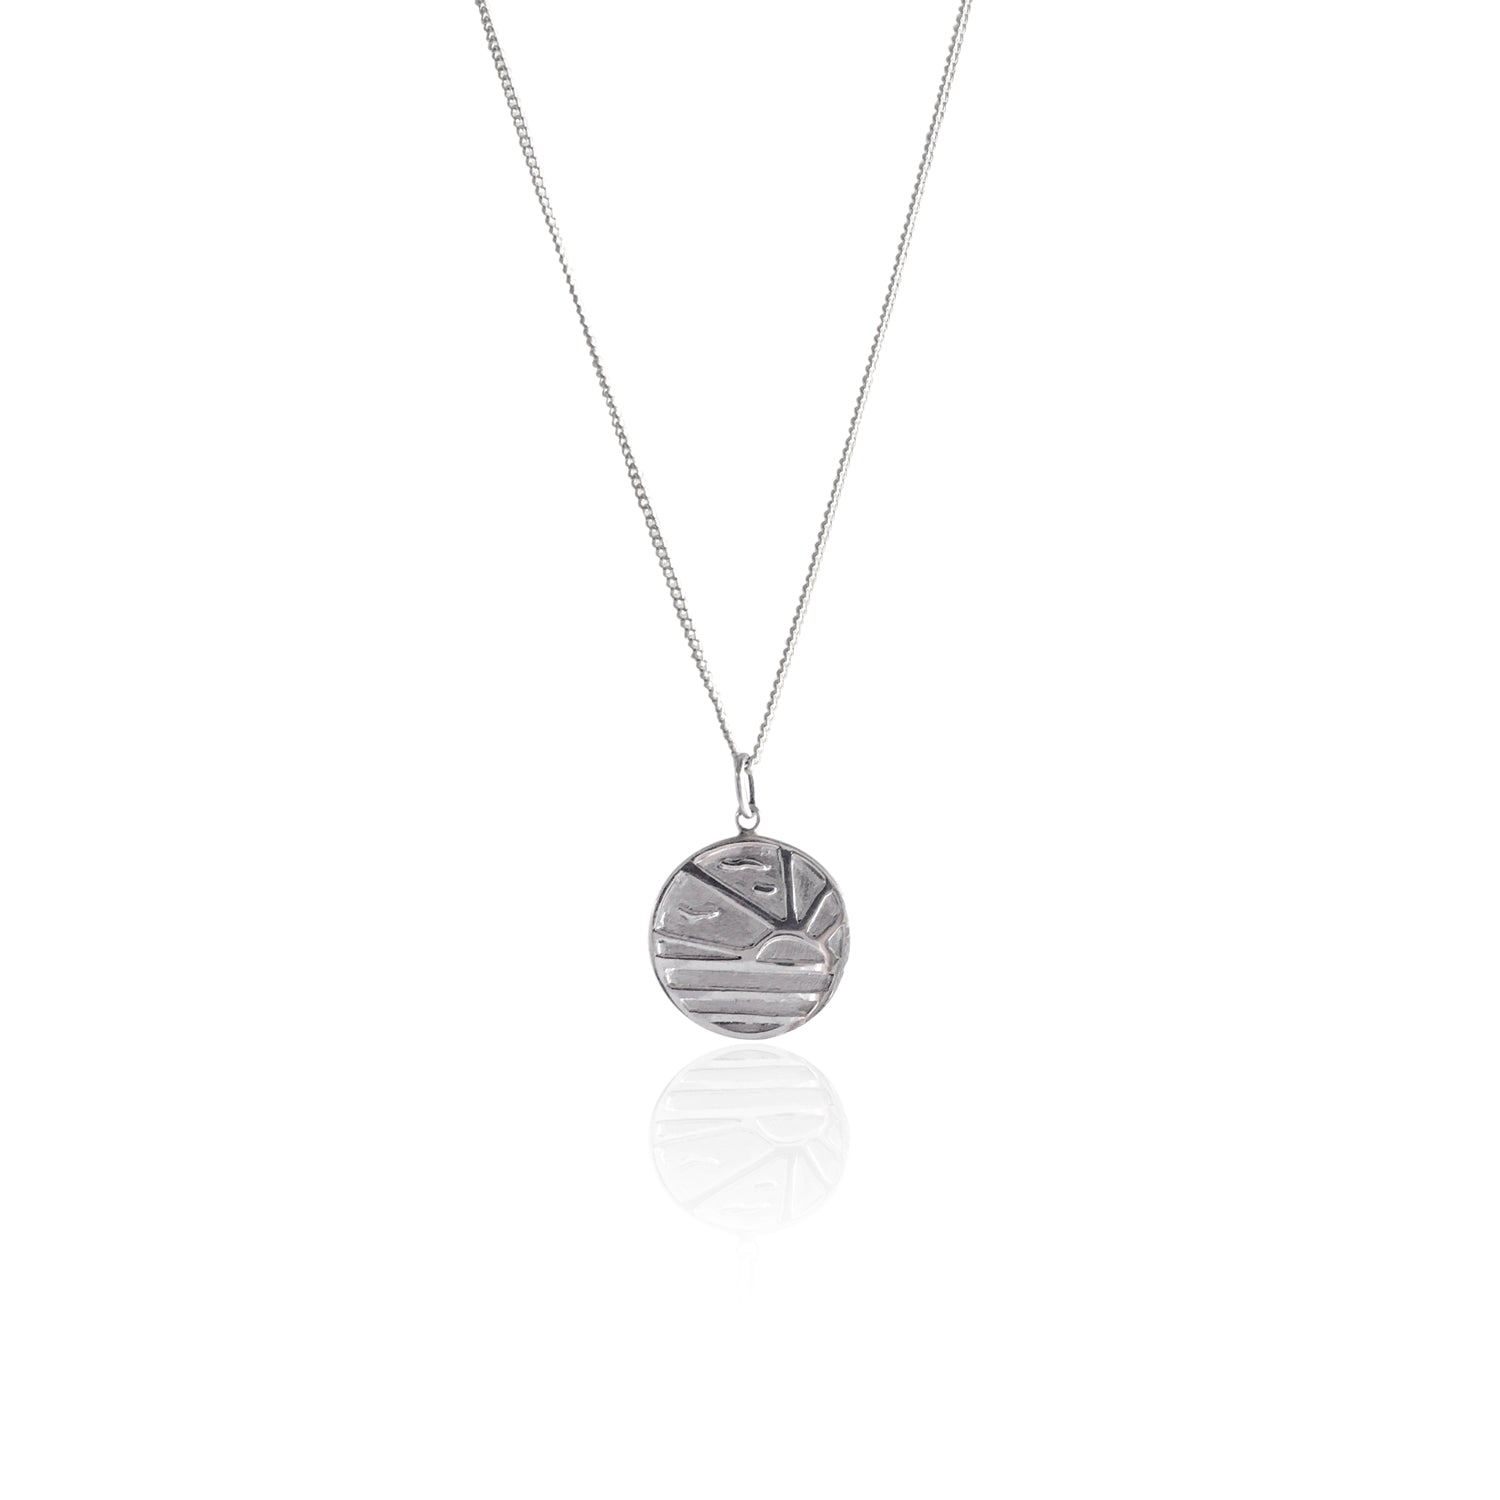 GOLDFISH KISS x LA LUNA ROSE SUNSET NECKLACE (Silver)